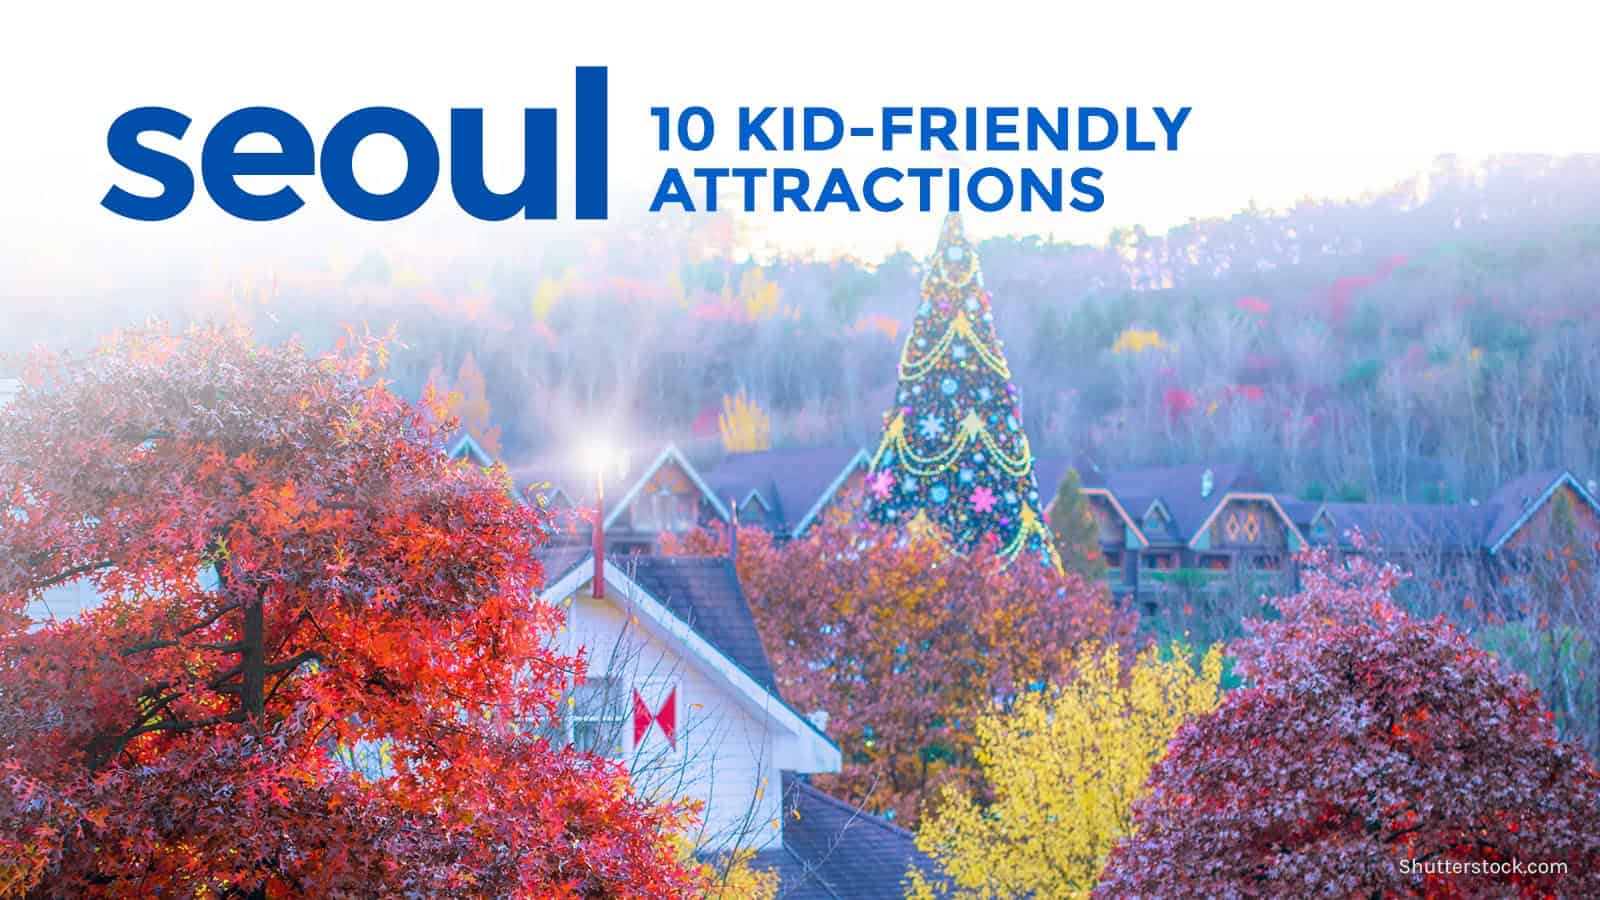 KOREA FOR KIDS: 10 Family-Friendly Attractions in Seoul